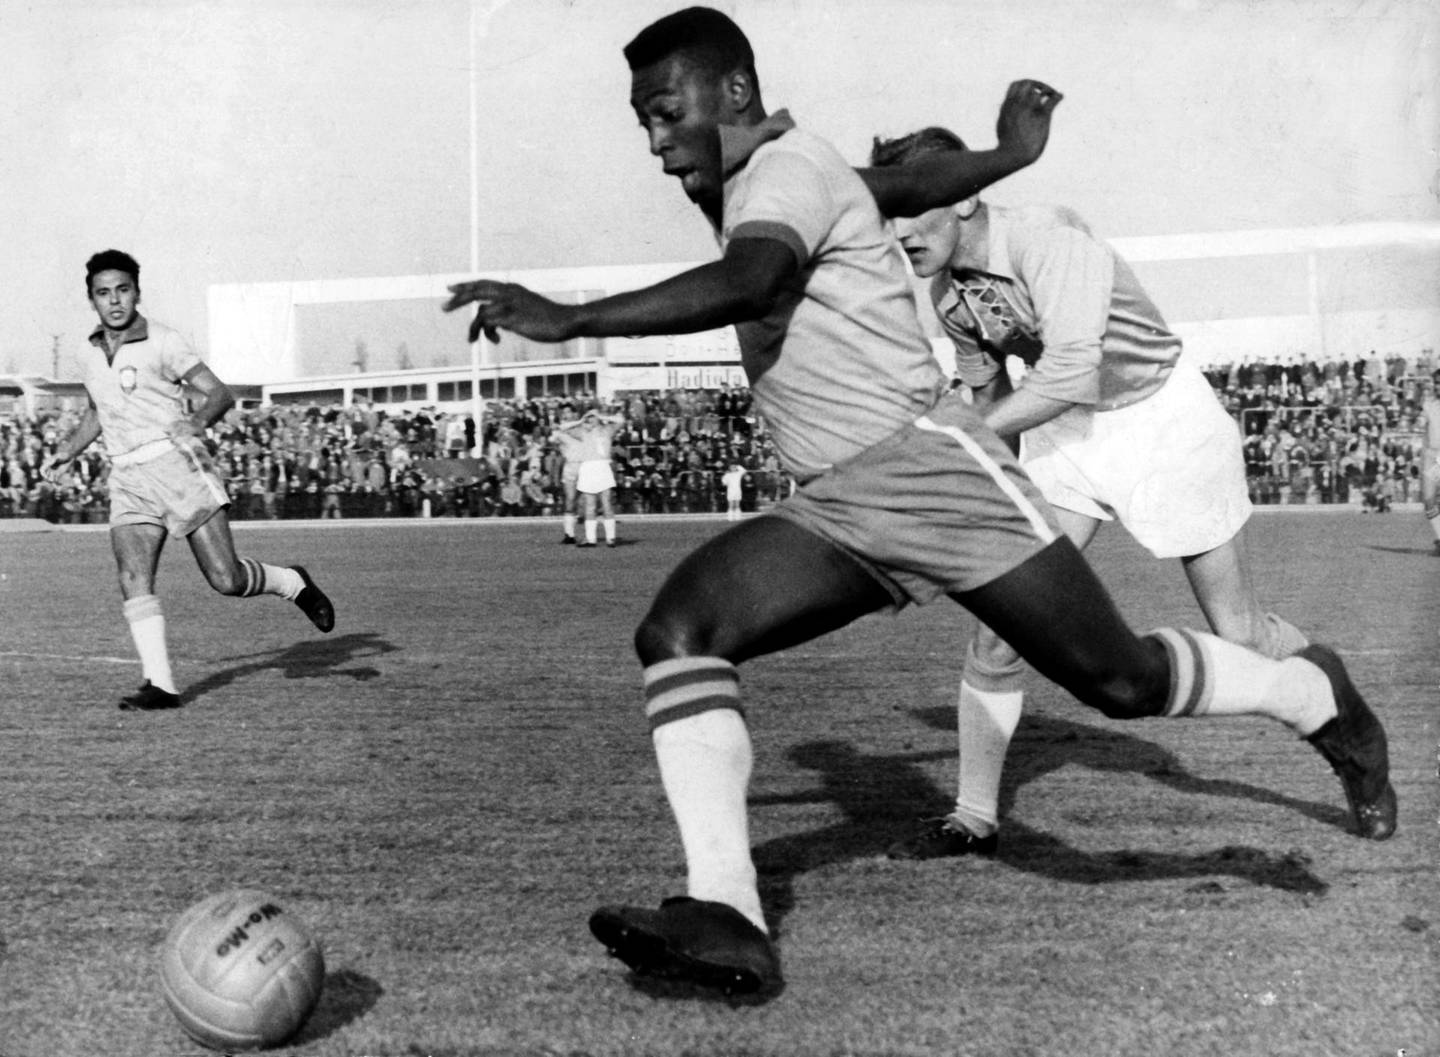 Brazilian striker Pele (front) runs with the ball past a Swedish defender of the Malmoe FF soccer club during an international friendly between Malmoe FF and the Brazilian national team in Malmoe, Sweden, 8 May 1960. Brazil won 7-1. Pele became famous when he played with the Brazilian national team at the 1958 FIFA World Cup in Sweden and won the first World Champion title for Brazil.